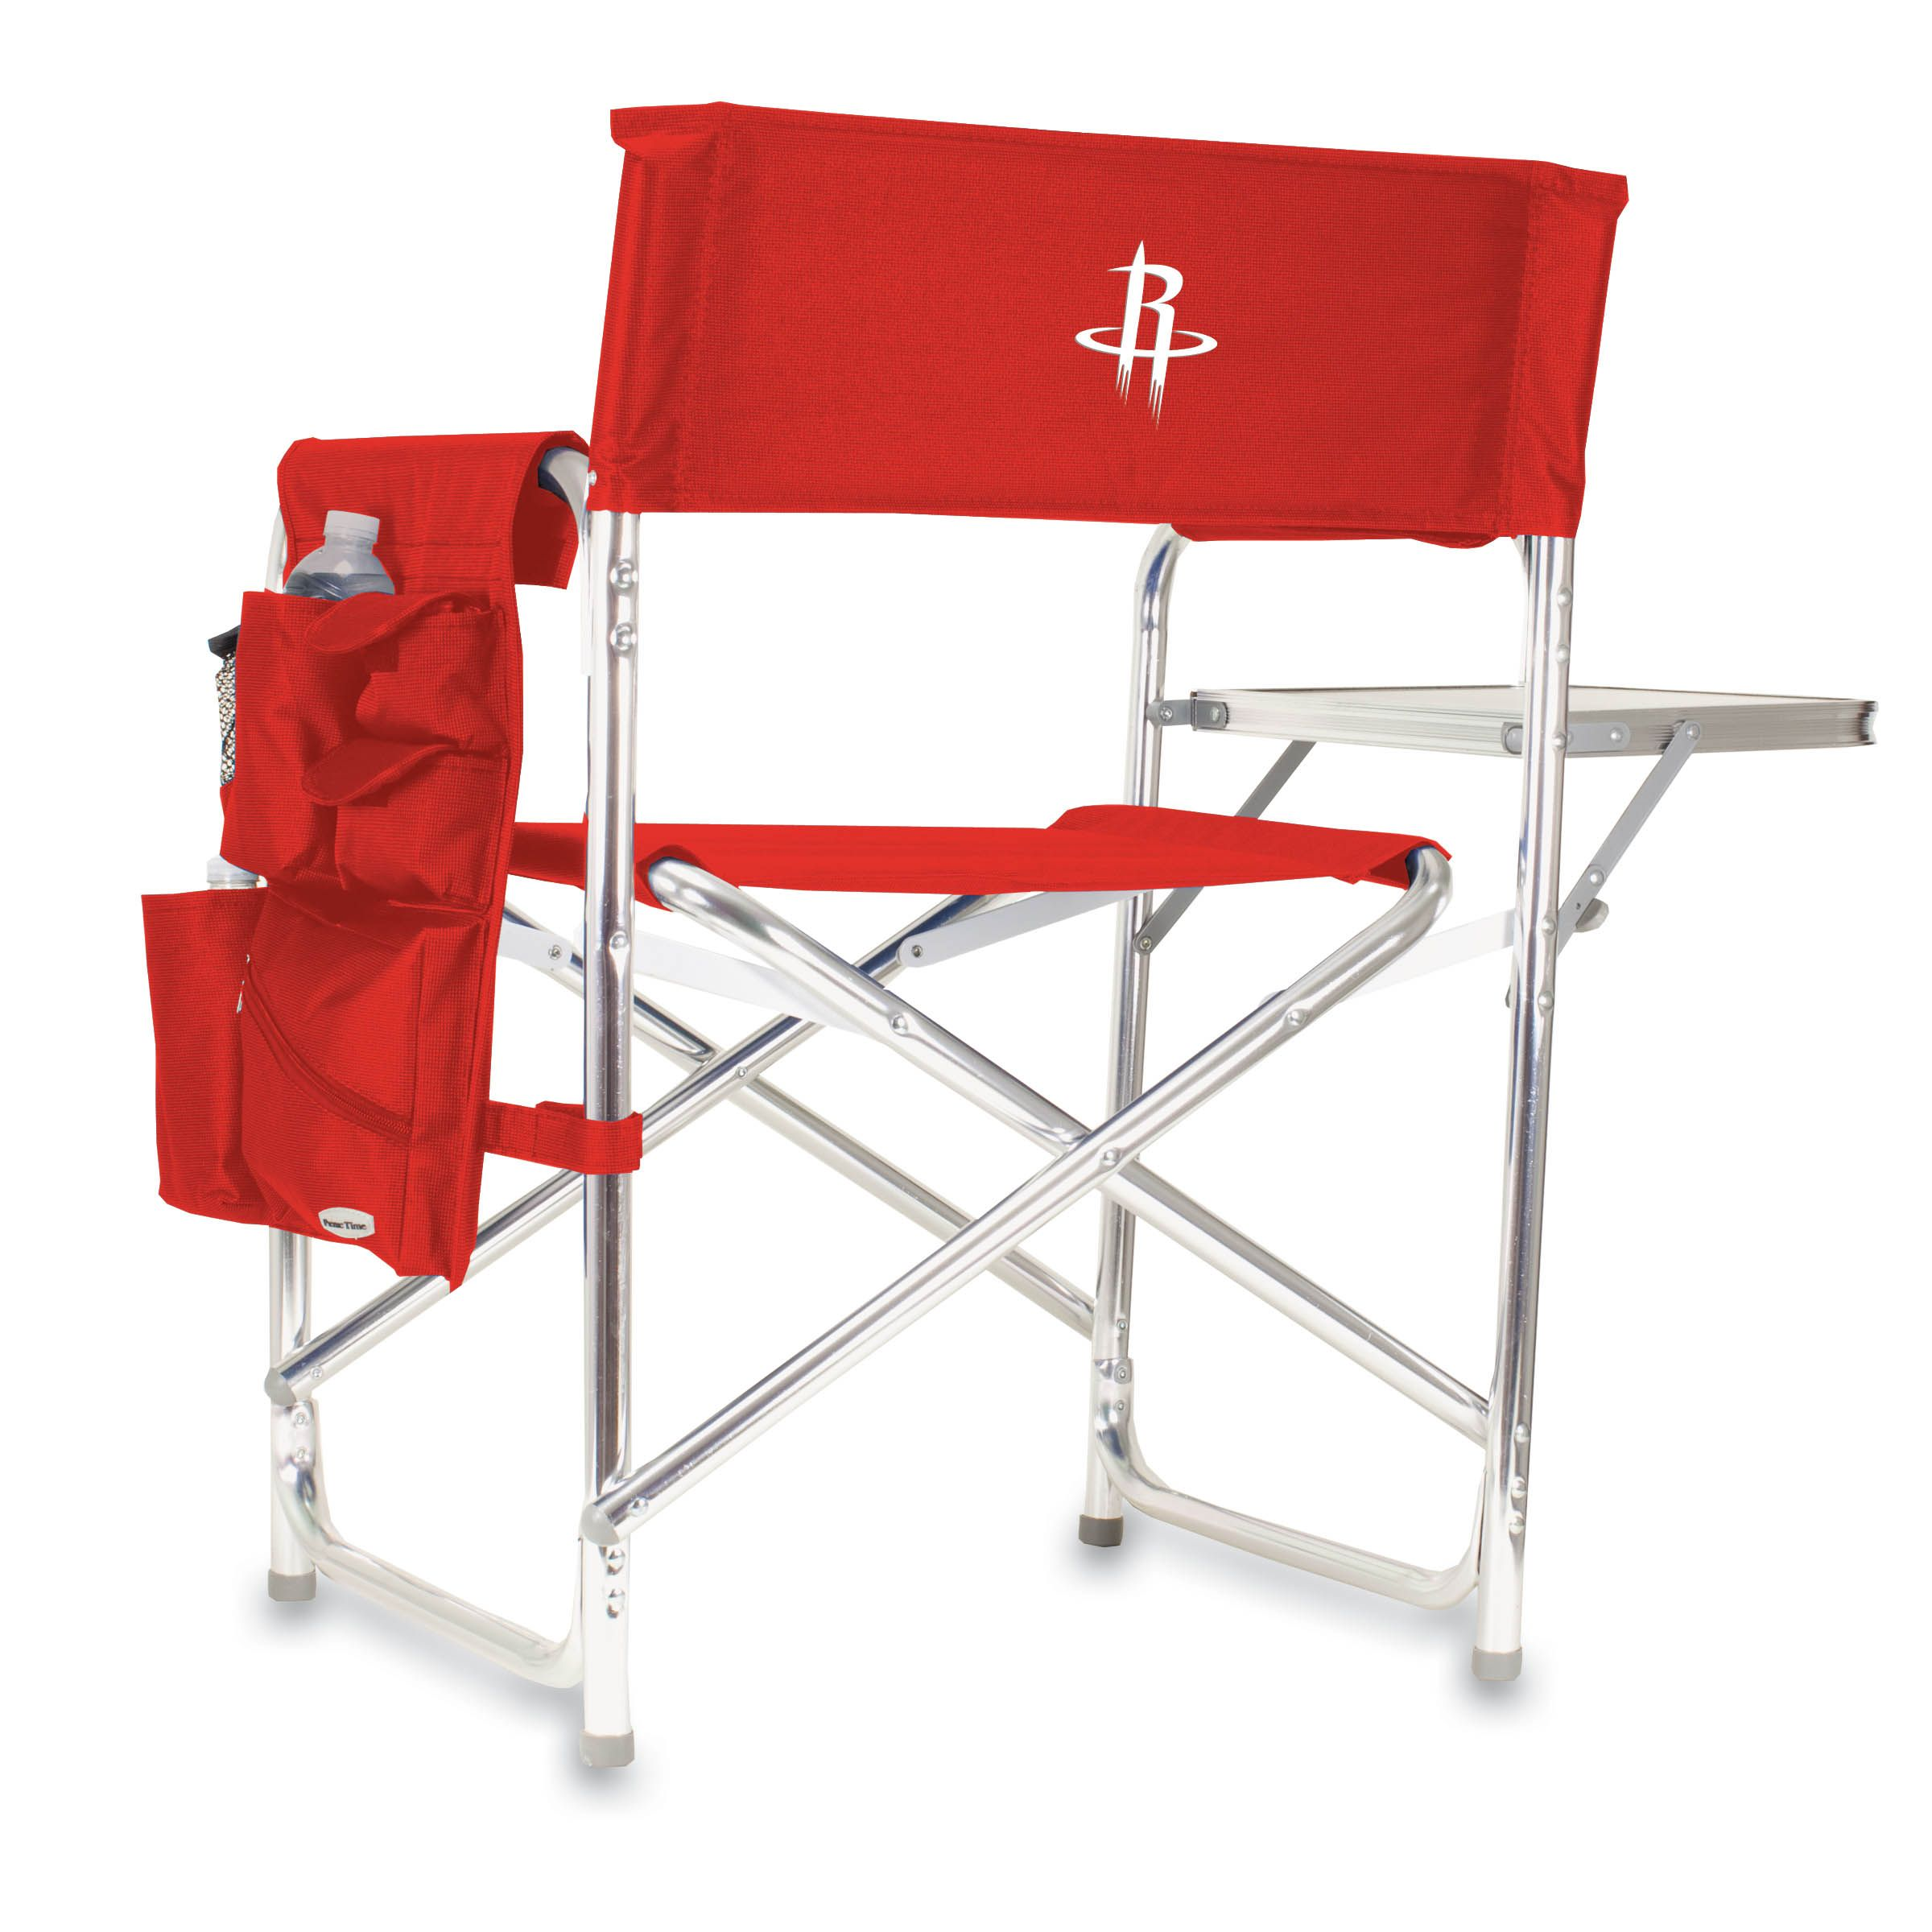 Sports Chairs Buy Sports Chairs at Discount Price